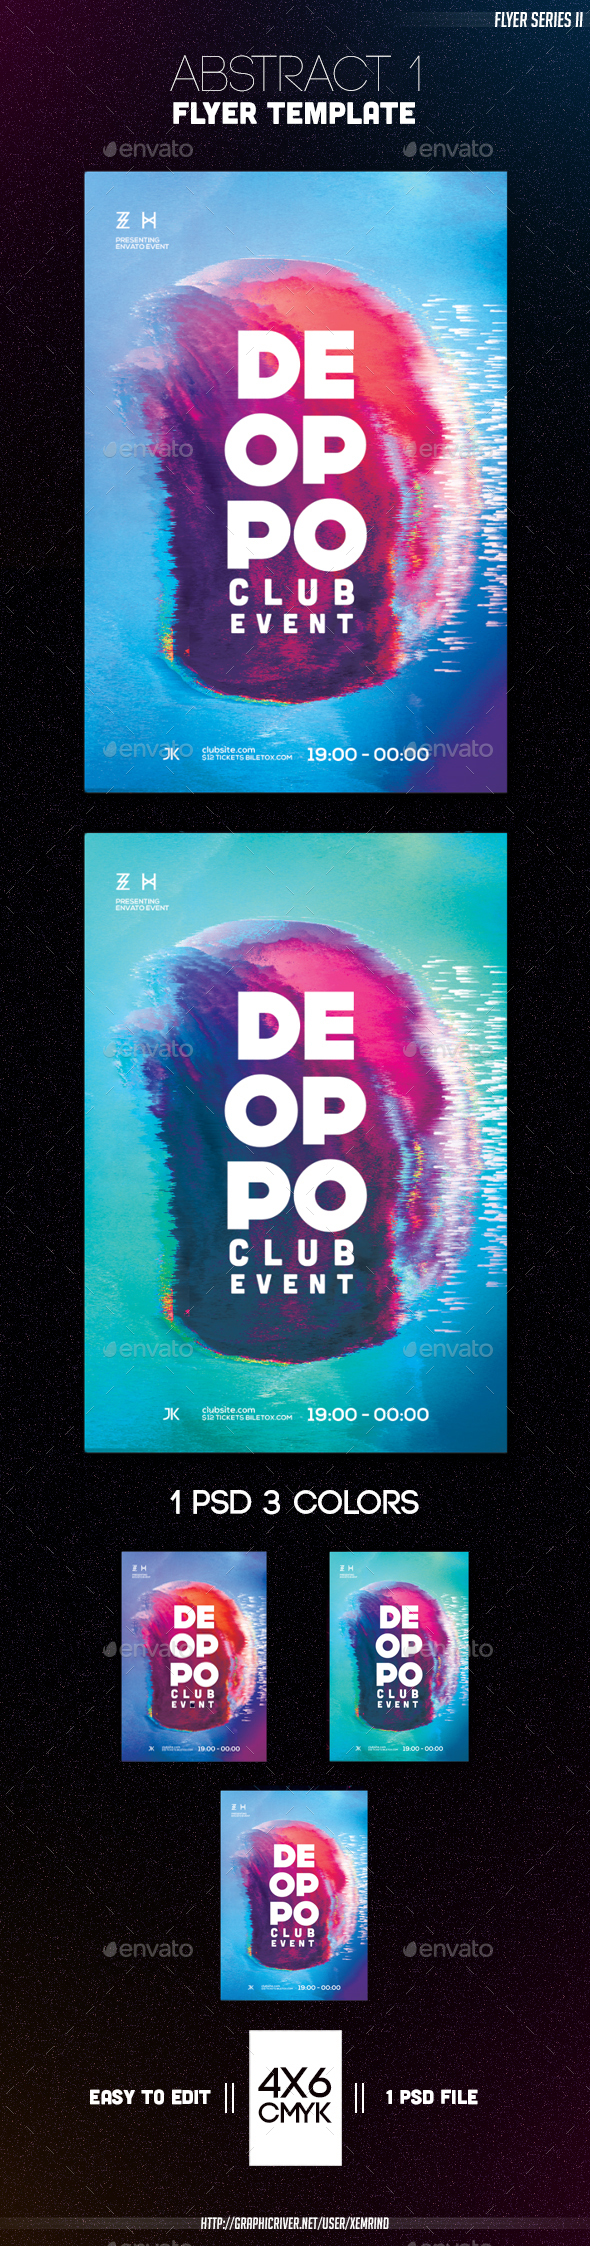 Abstract 1 Flyer Template - Clubs & Parties Events